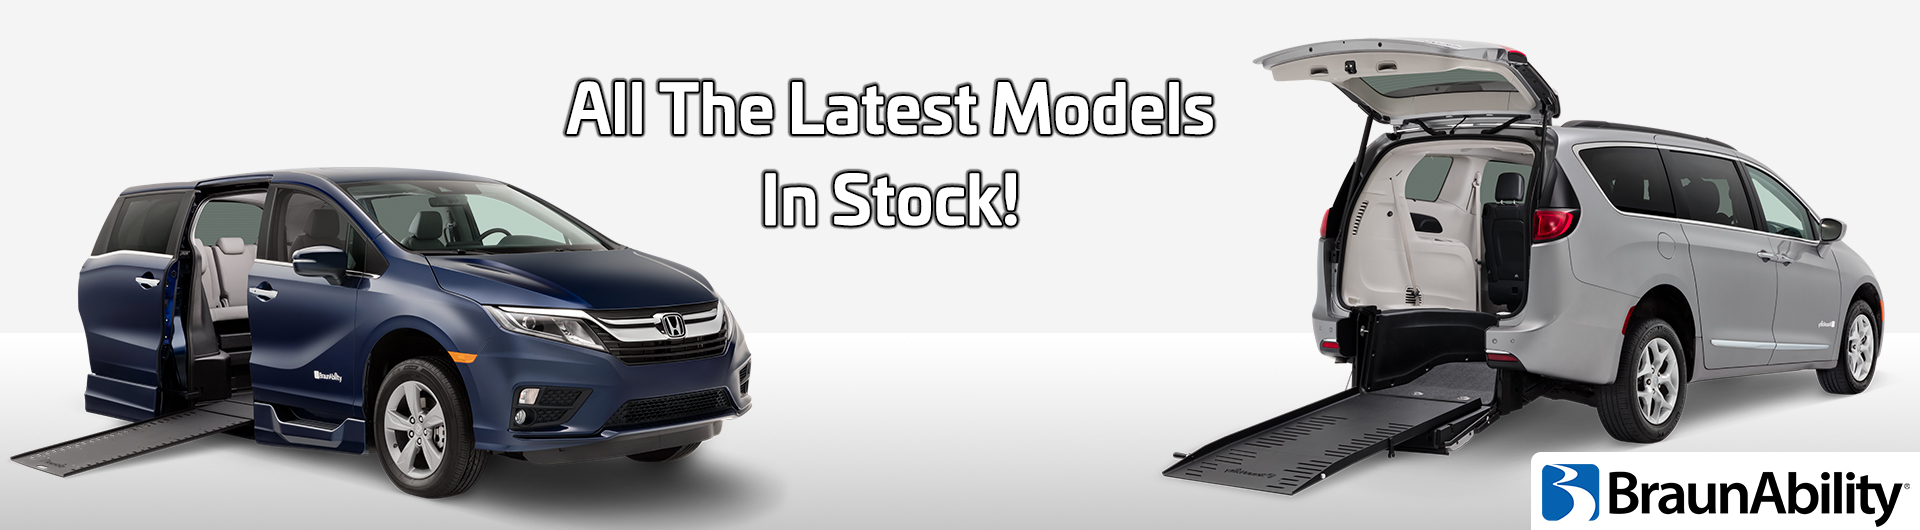 All Available Models Banner